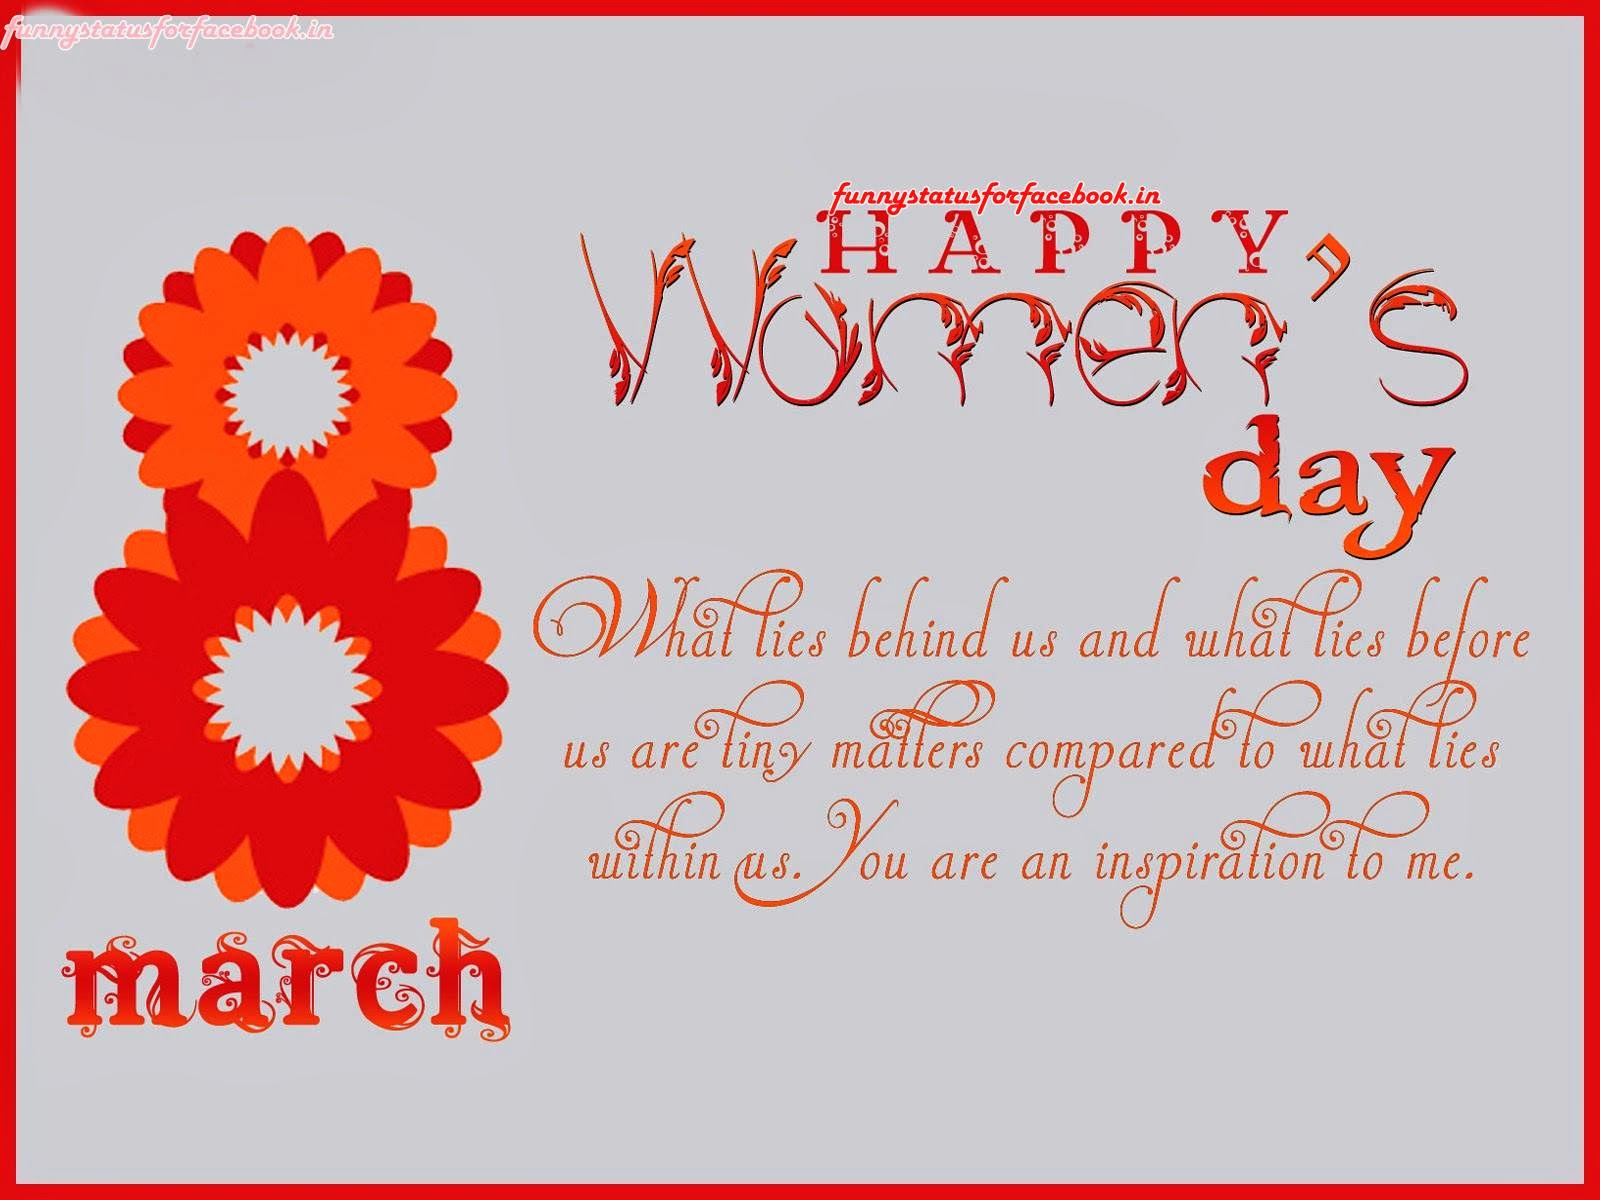 Happy International Women's Day Wishes and Greetings Message SMS Card Photo